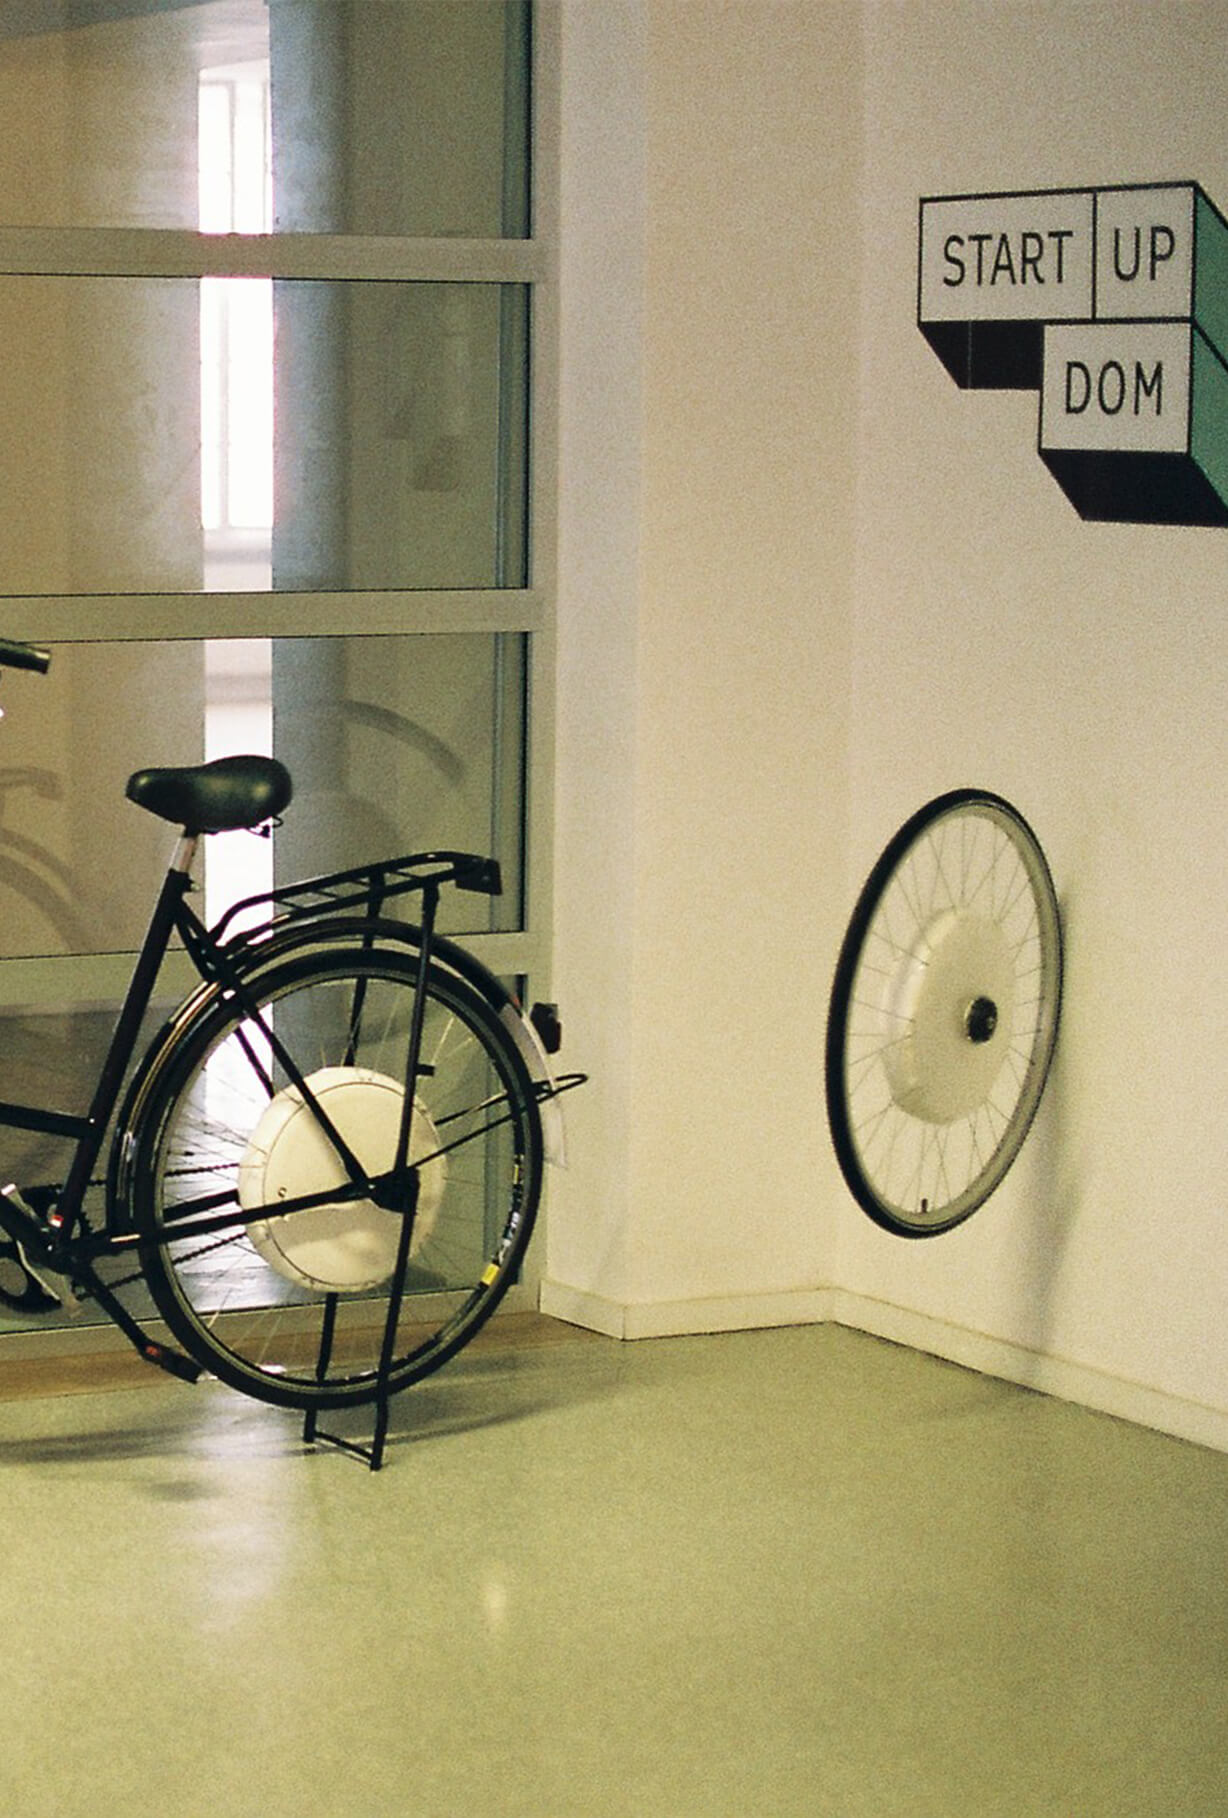 Bike stand in pop-up store Pop-Up Dom.